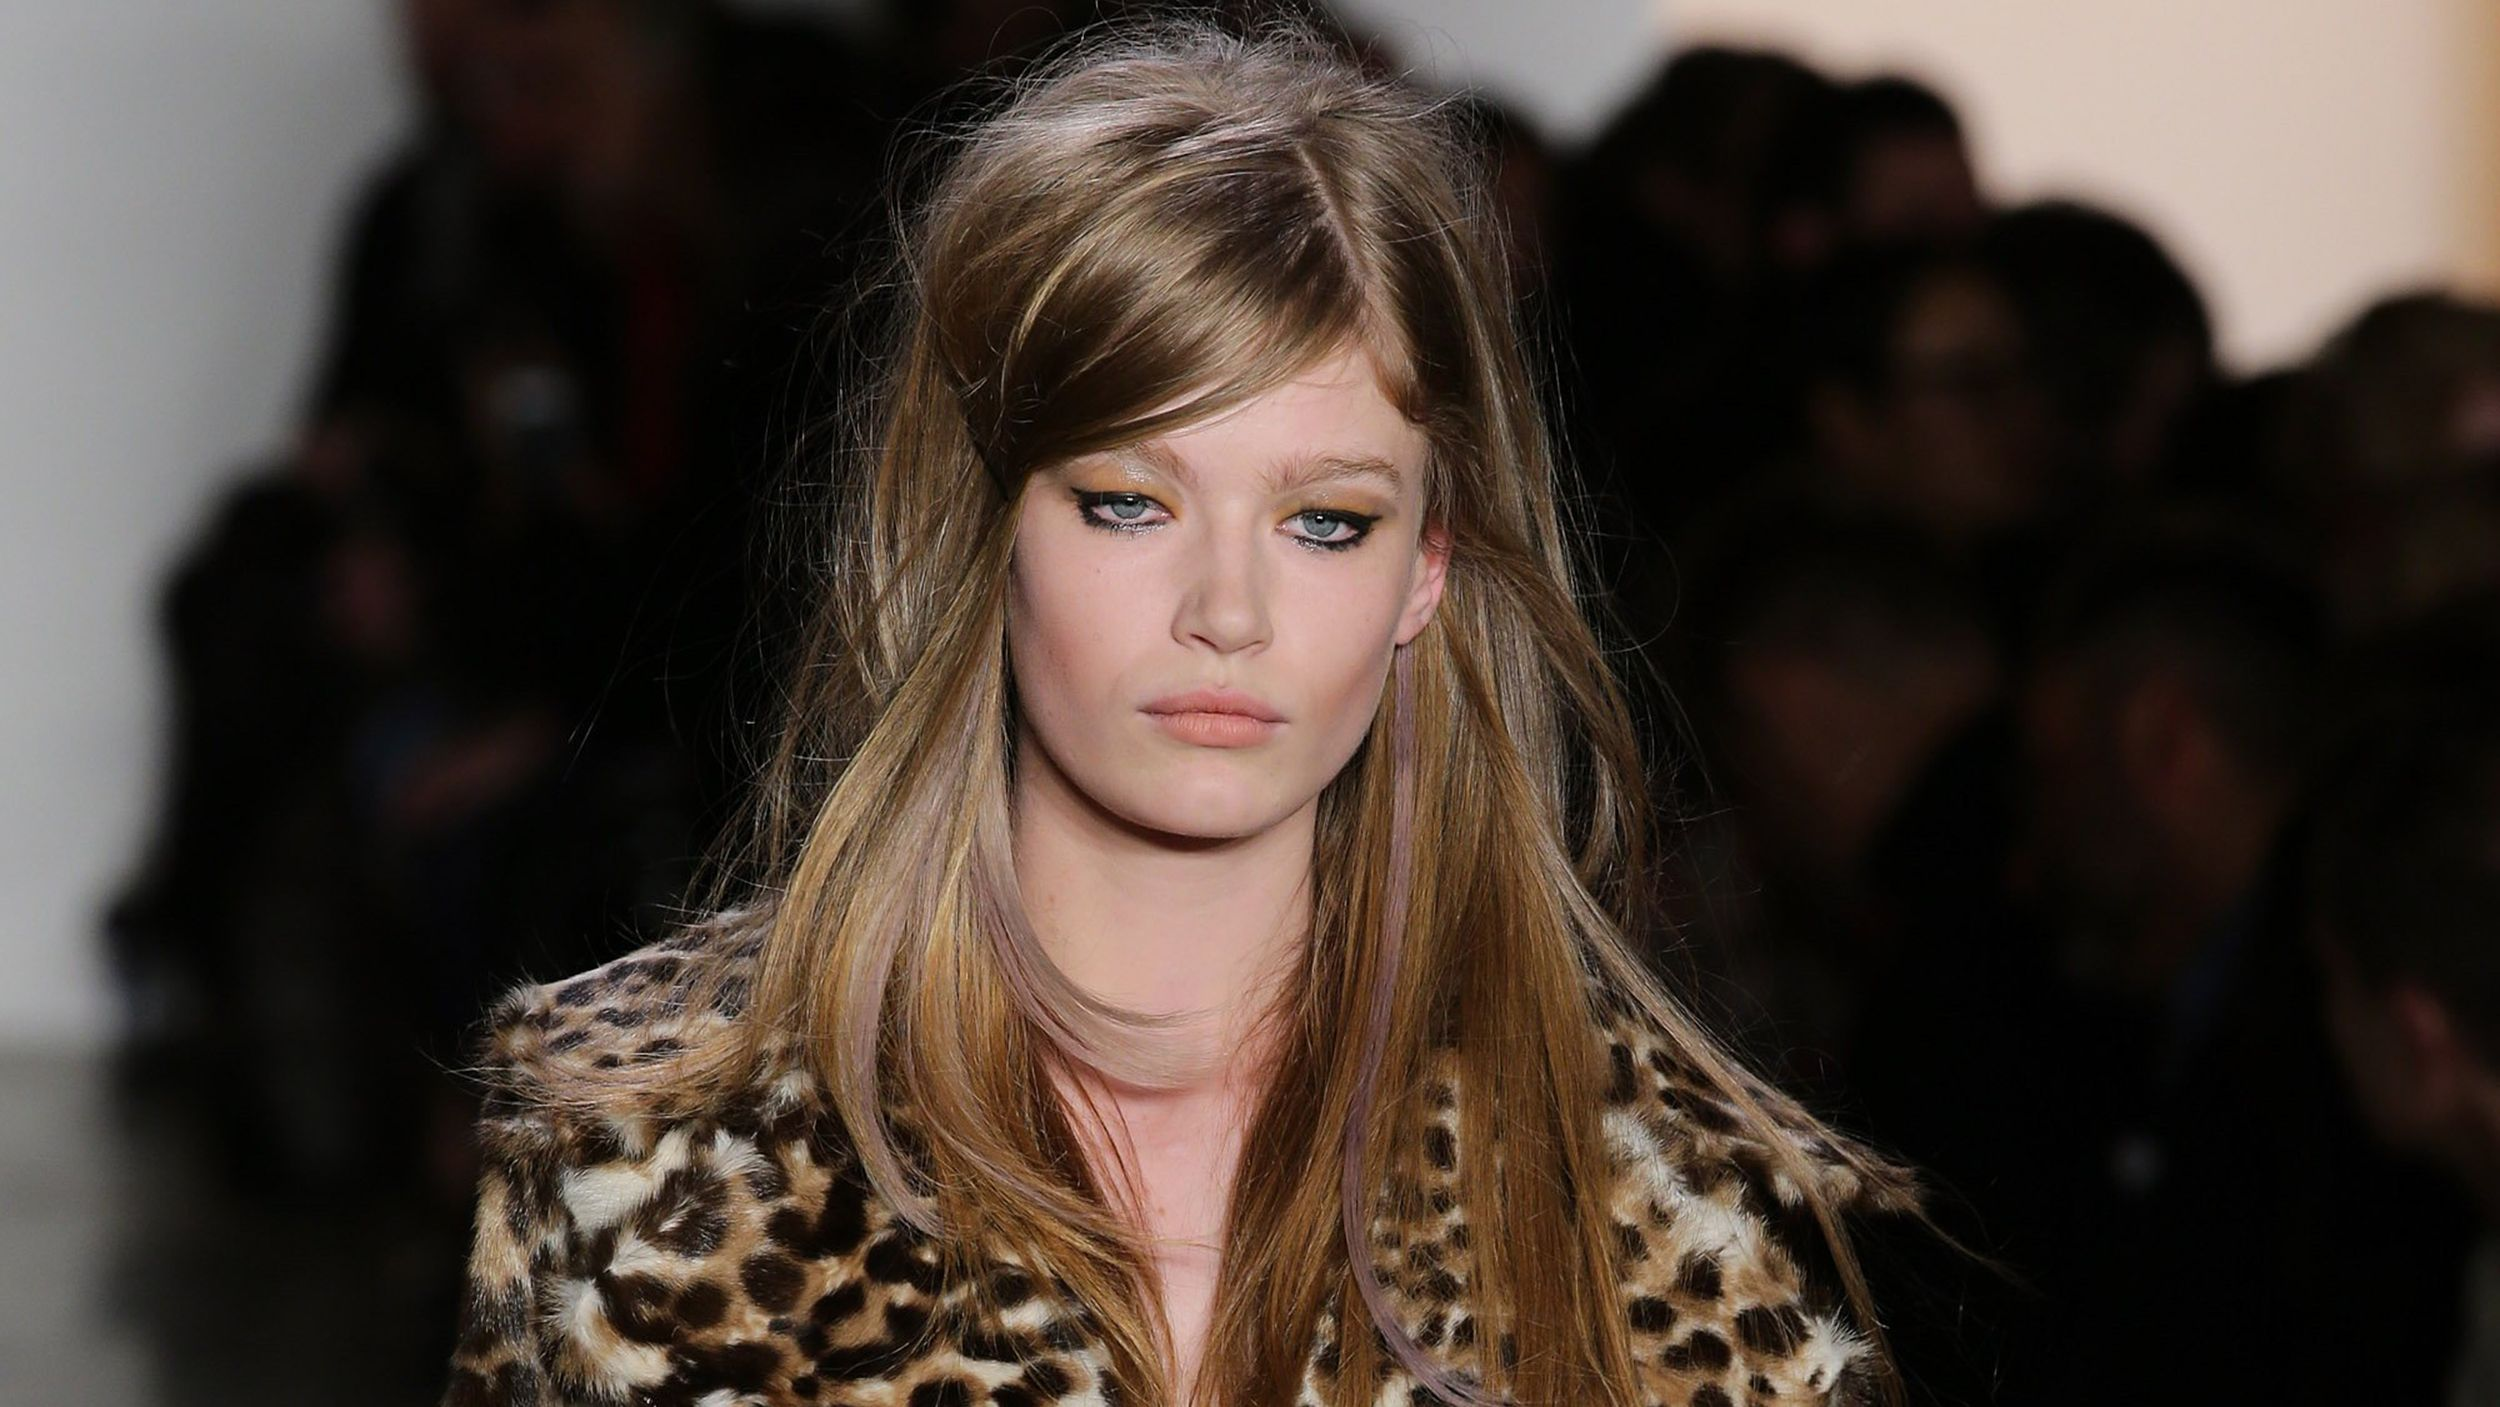 Violet eyes? Gold braids? 6 best beauty trends from Fashion Week